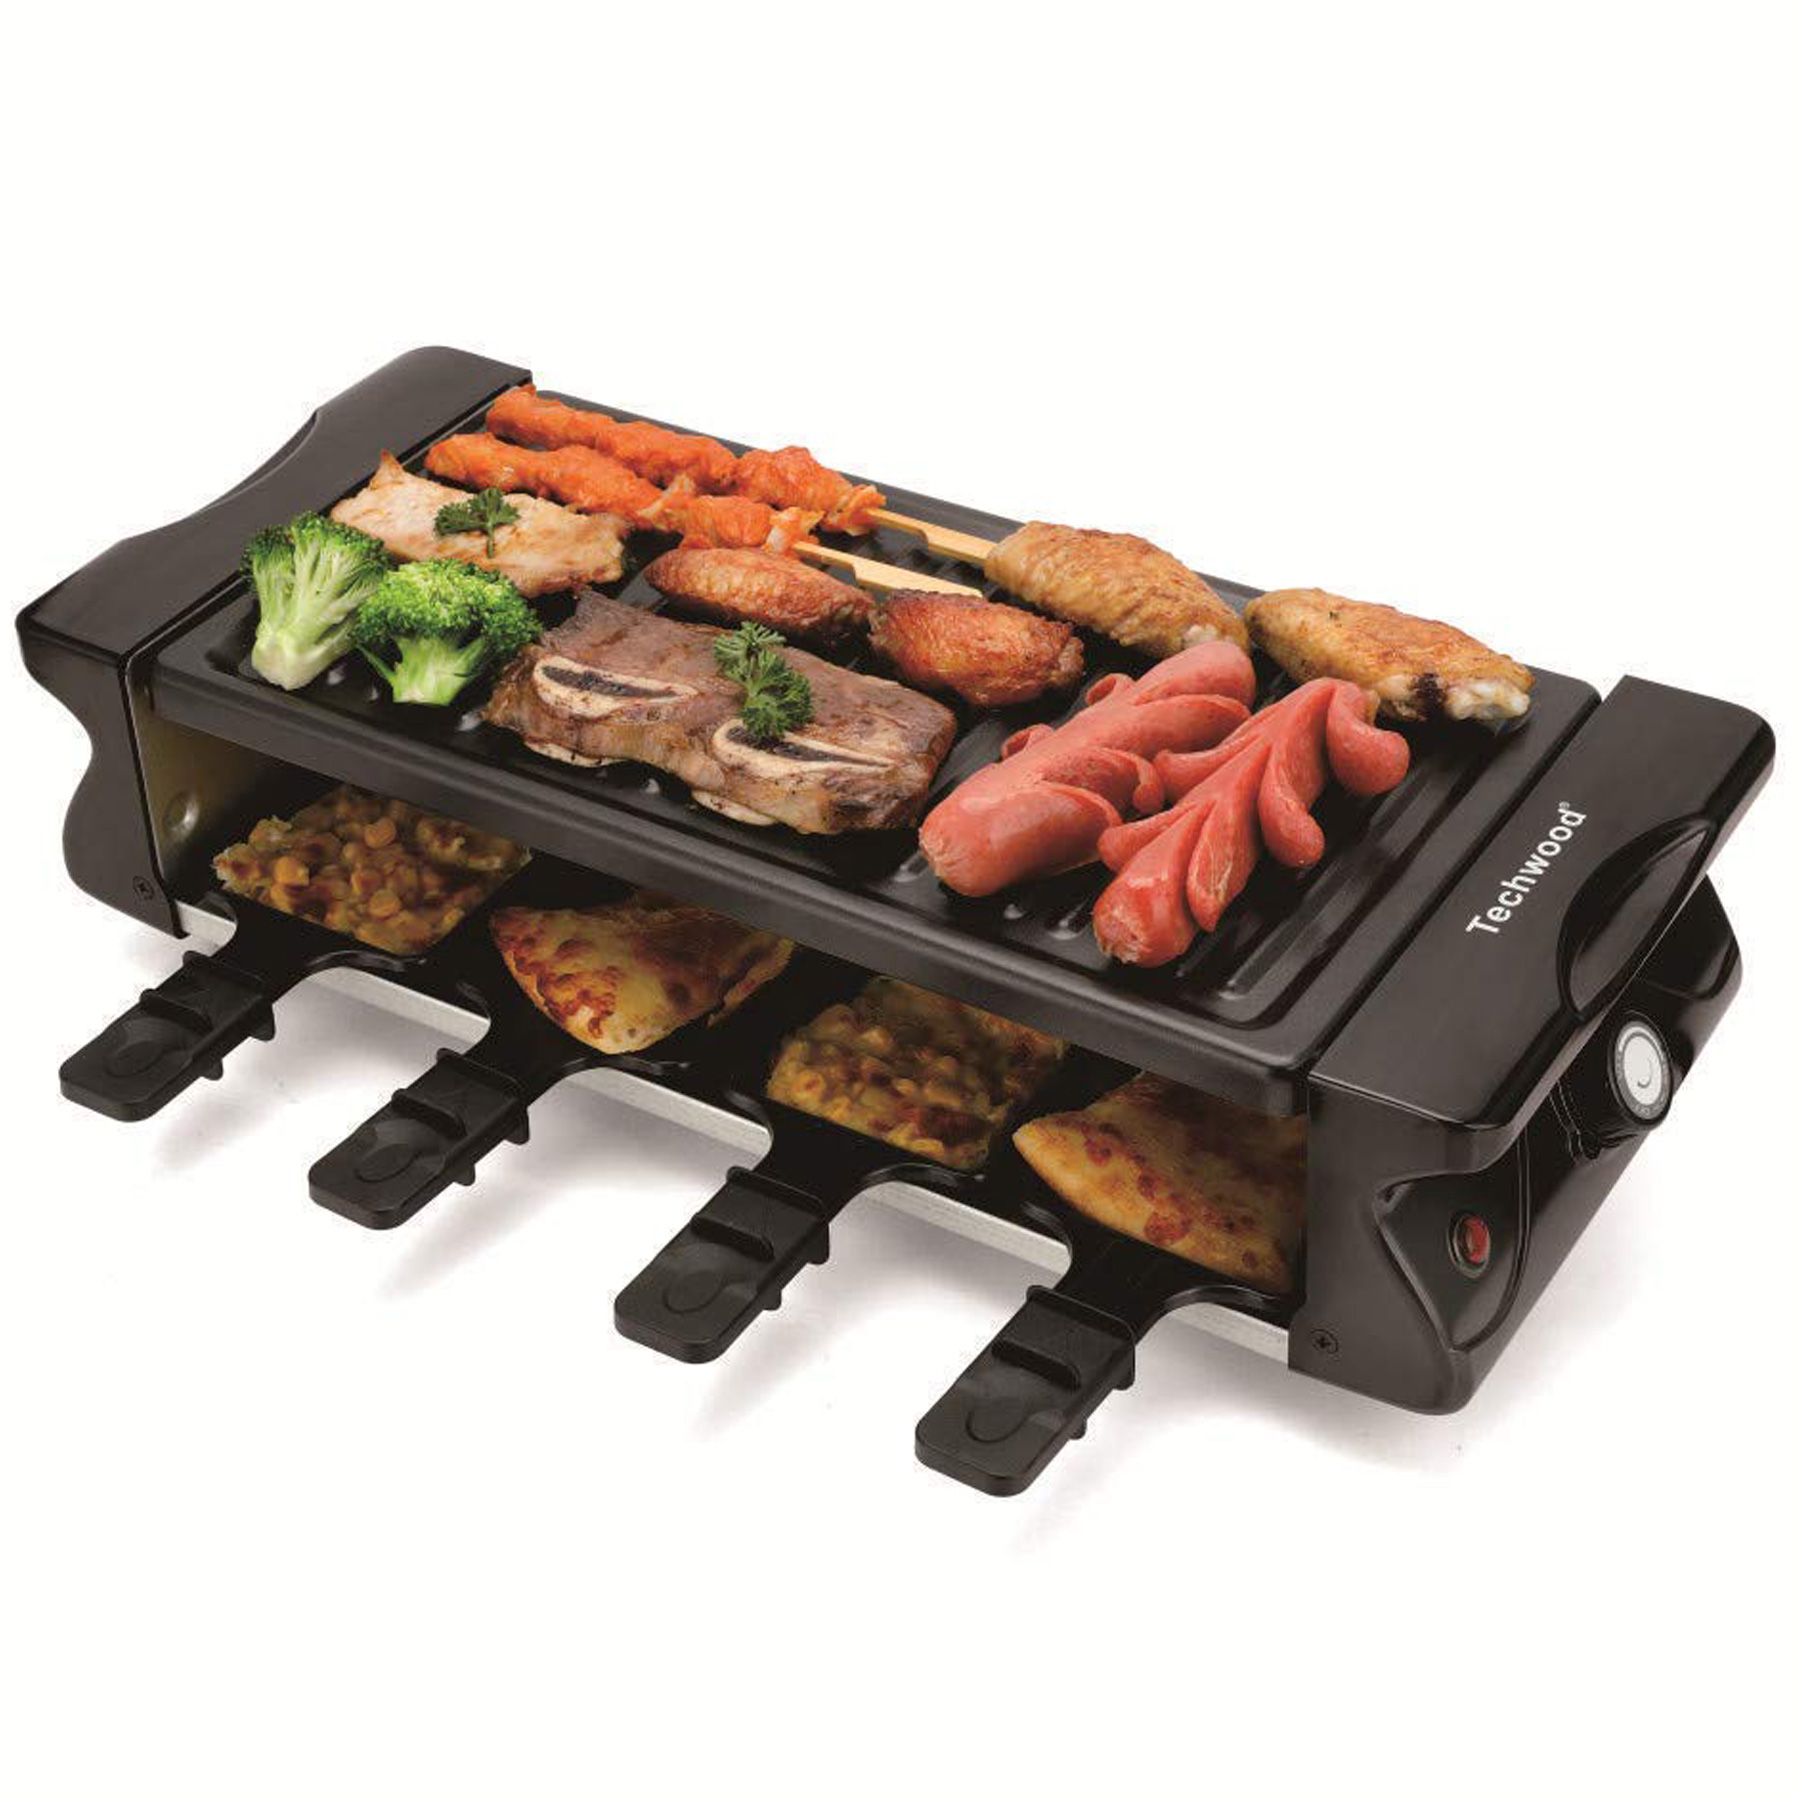 50% off Electric BBQ & Raclette Grill - Deal Hunting Babe